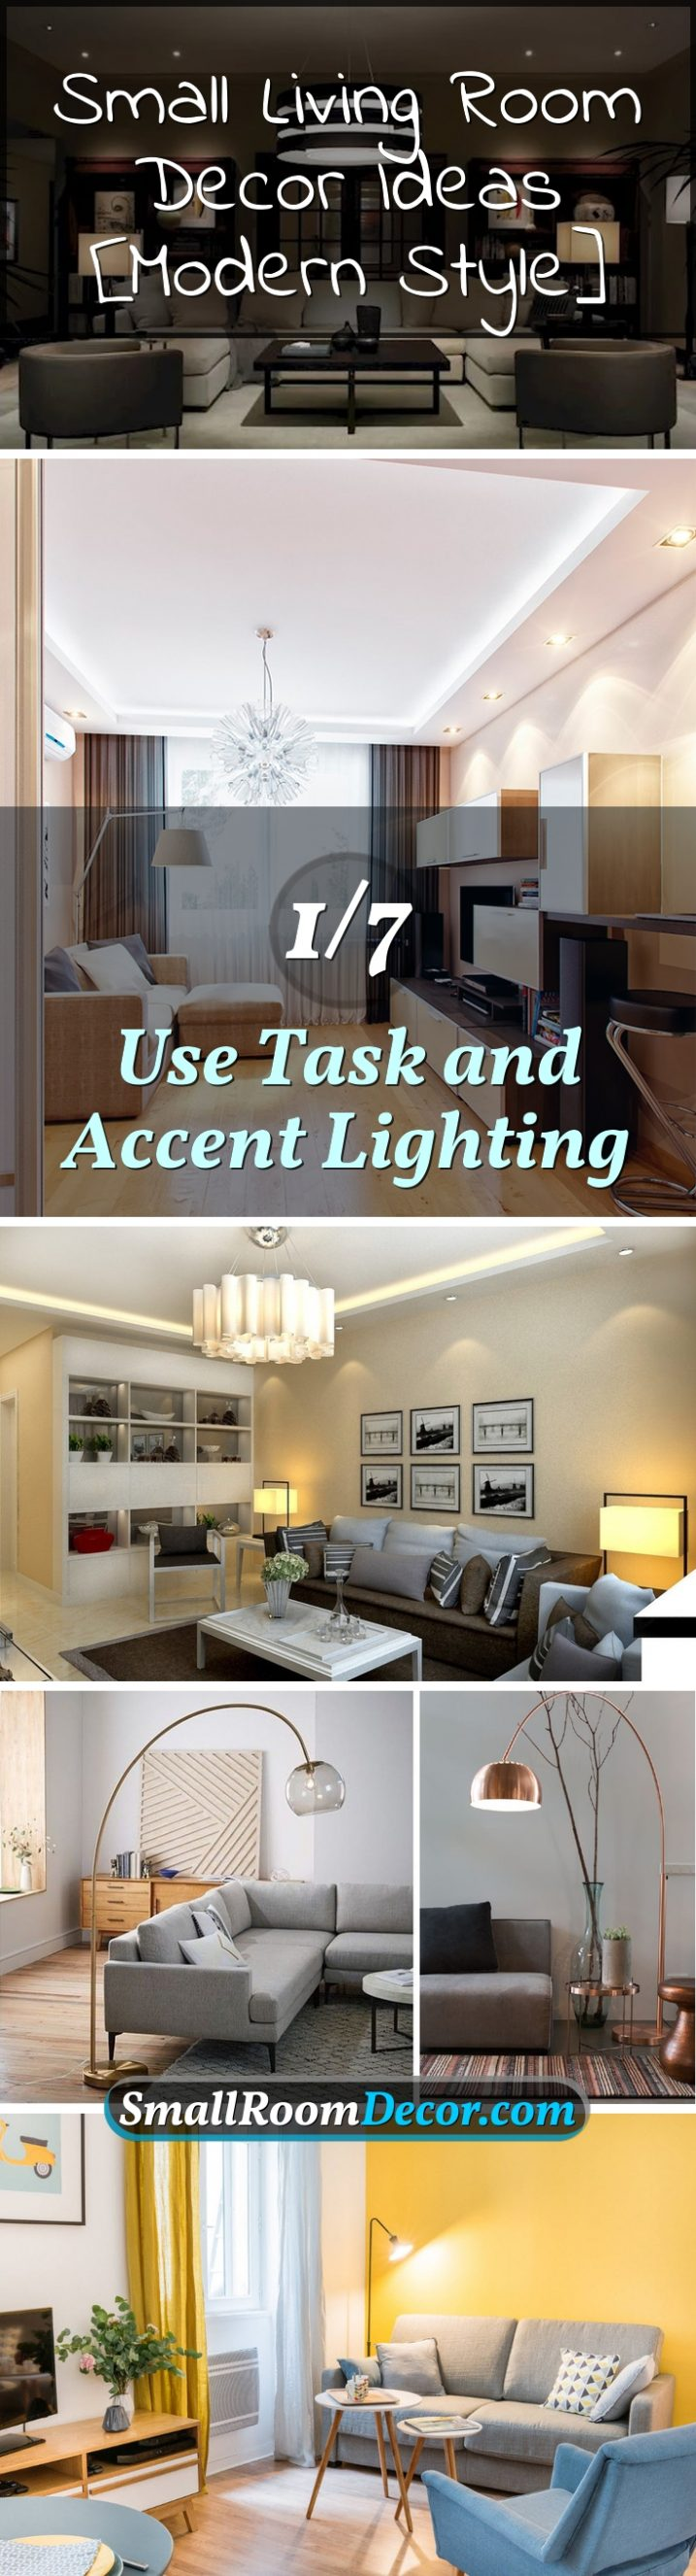 Small Floor Spotlights 7 Small Living Room Decor Ideas